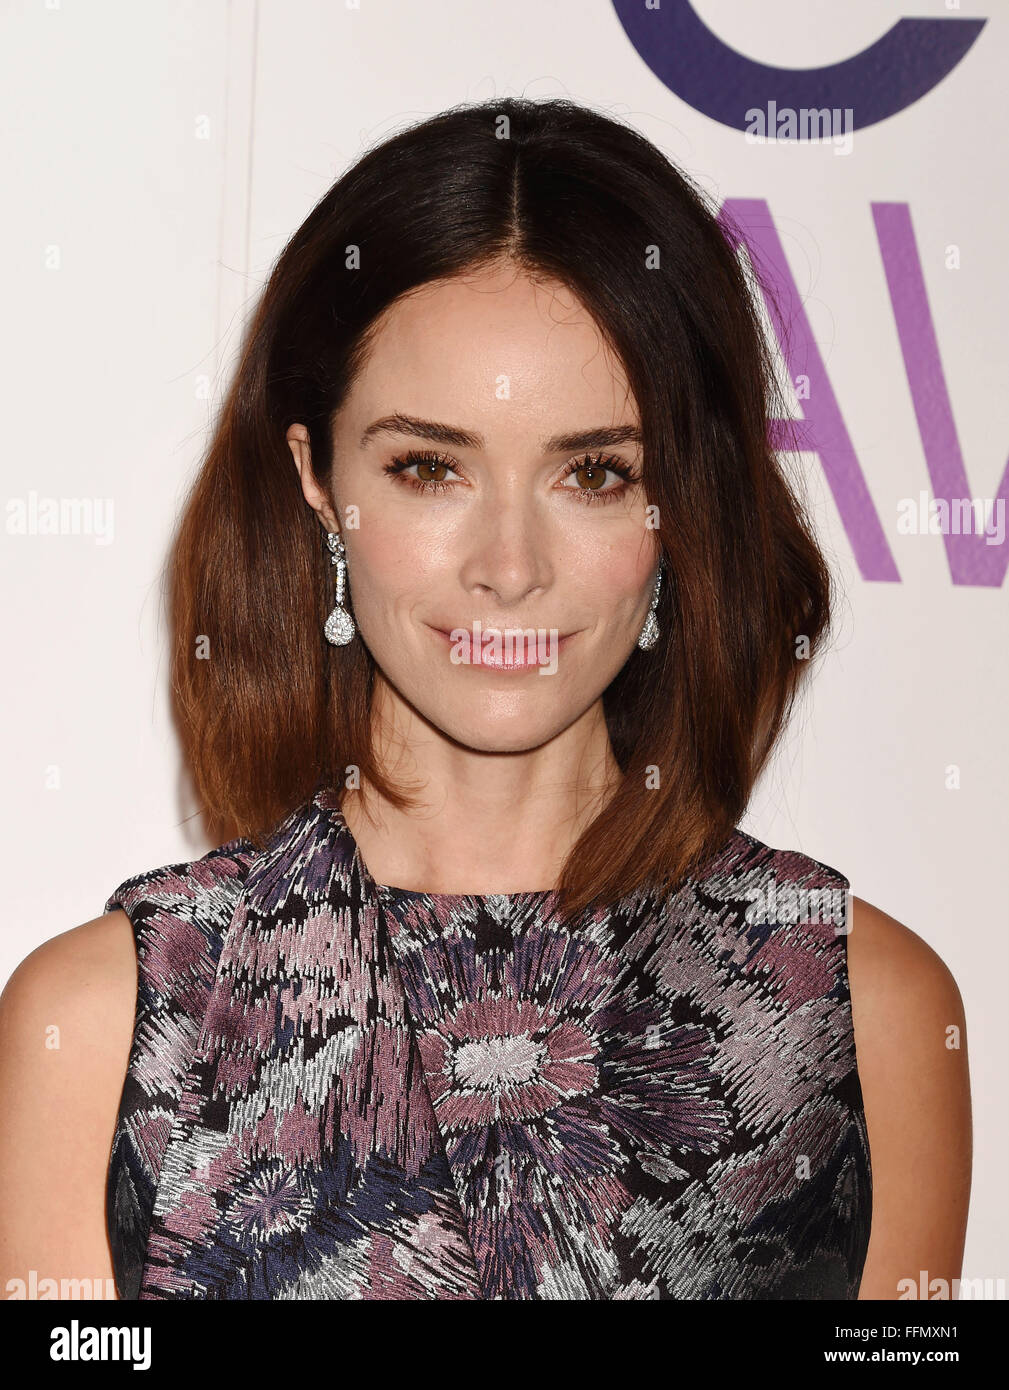 Actress Abigail Spencer attends the People's Choice Awards 2016 - Nominations Press Conference at The Paley - Stock Image